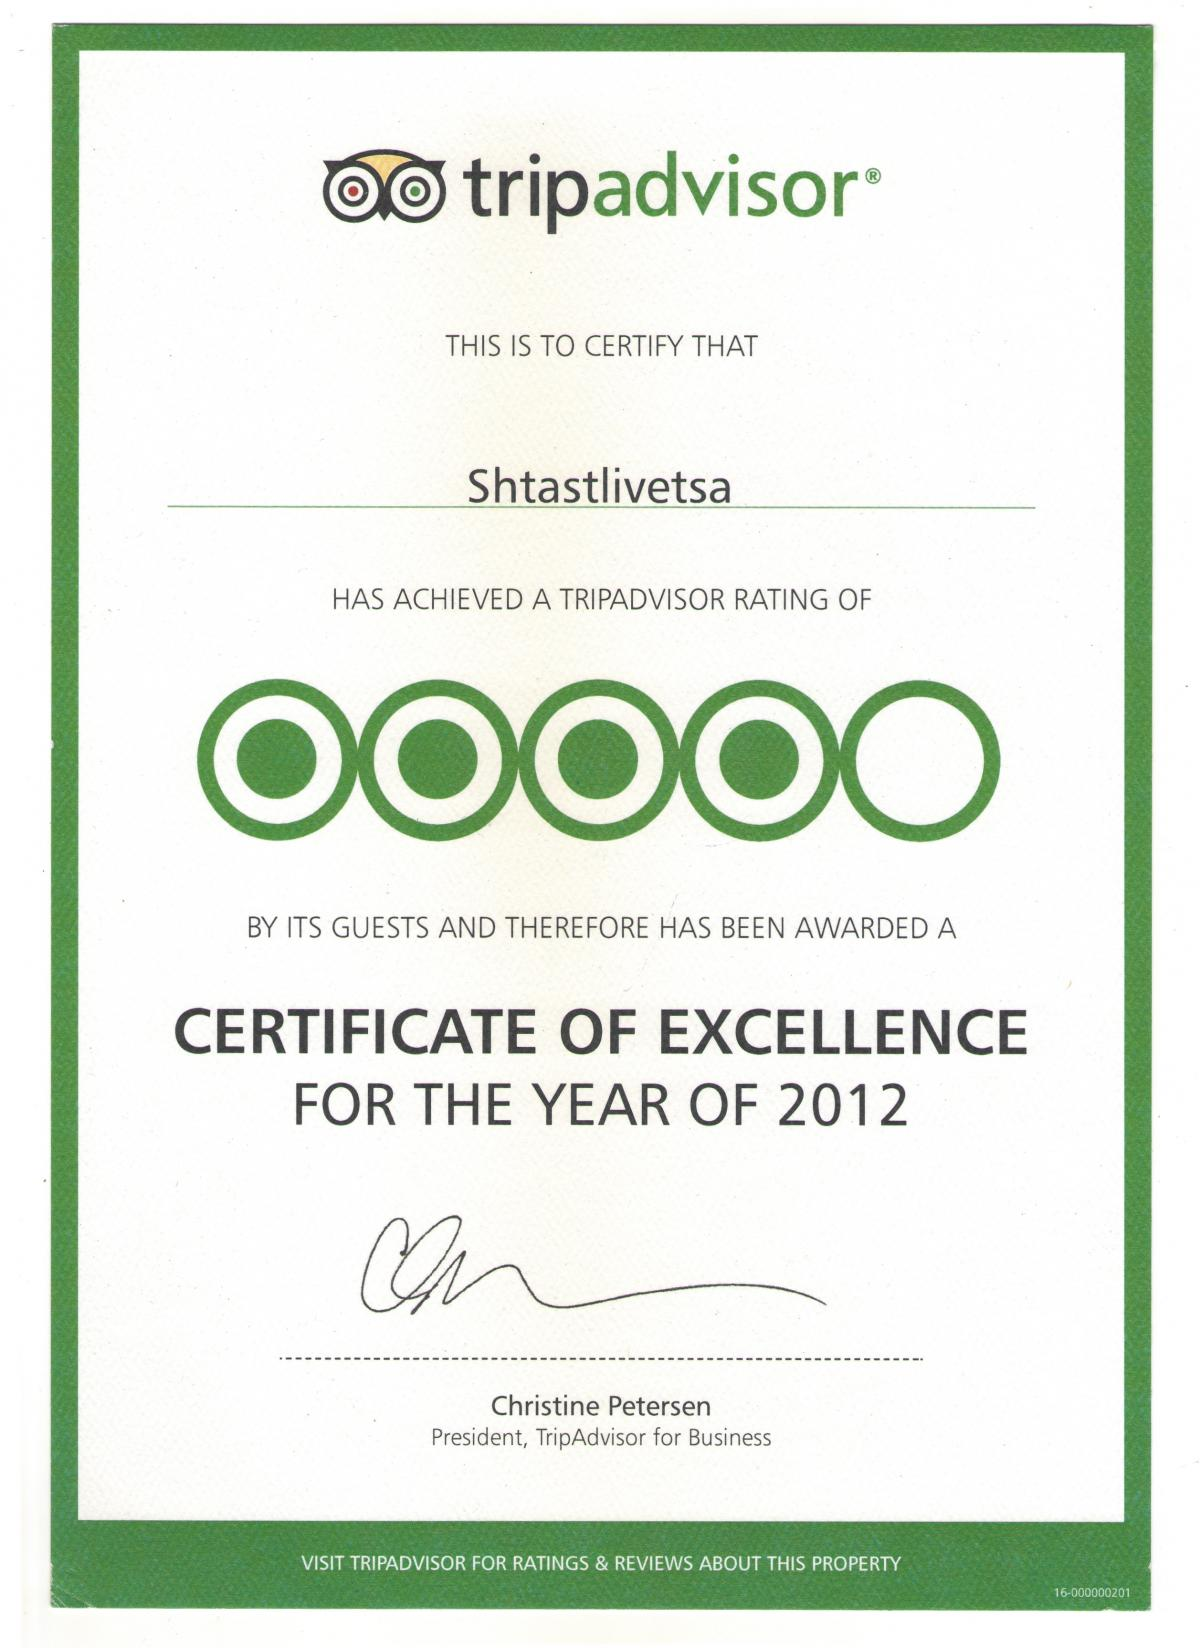 Certificate of Excellence - Tripadvisor 2012